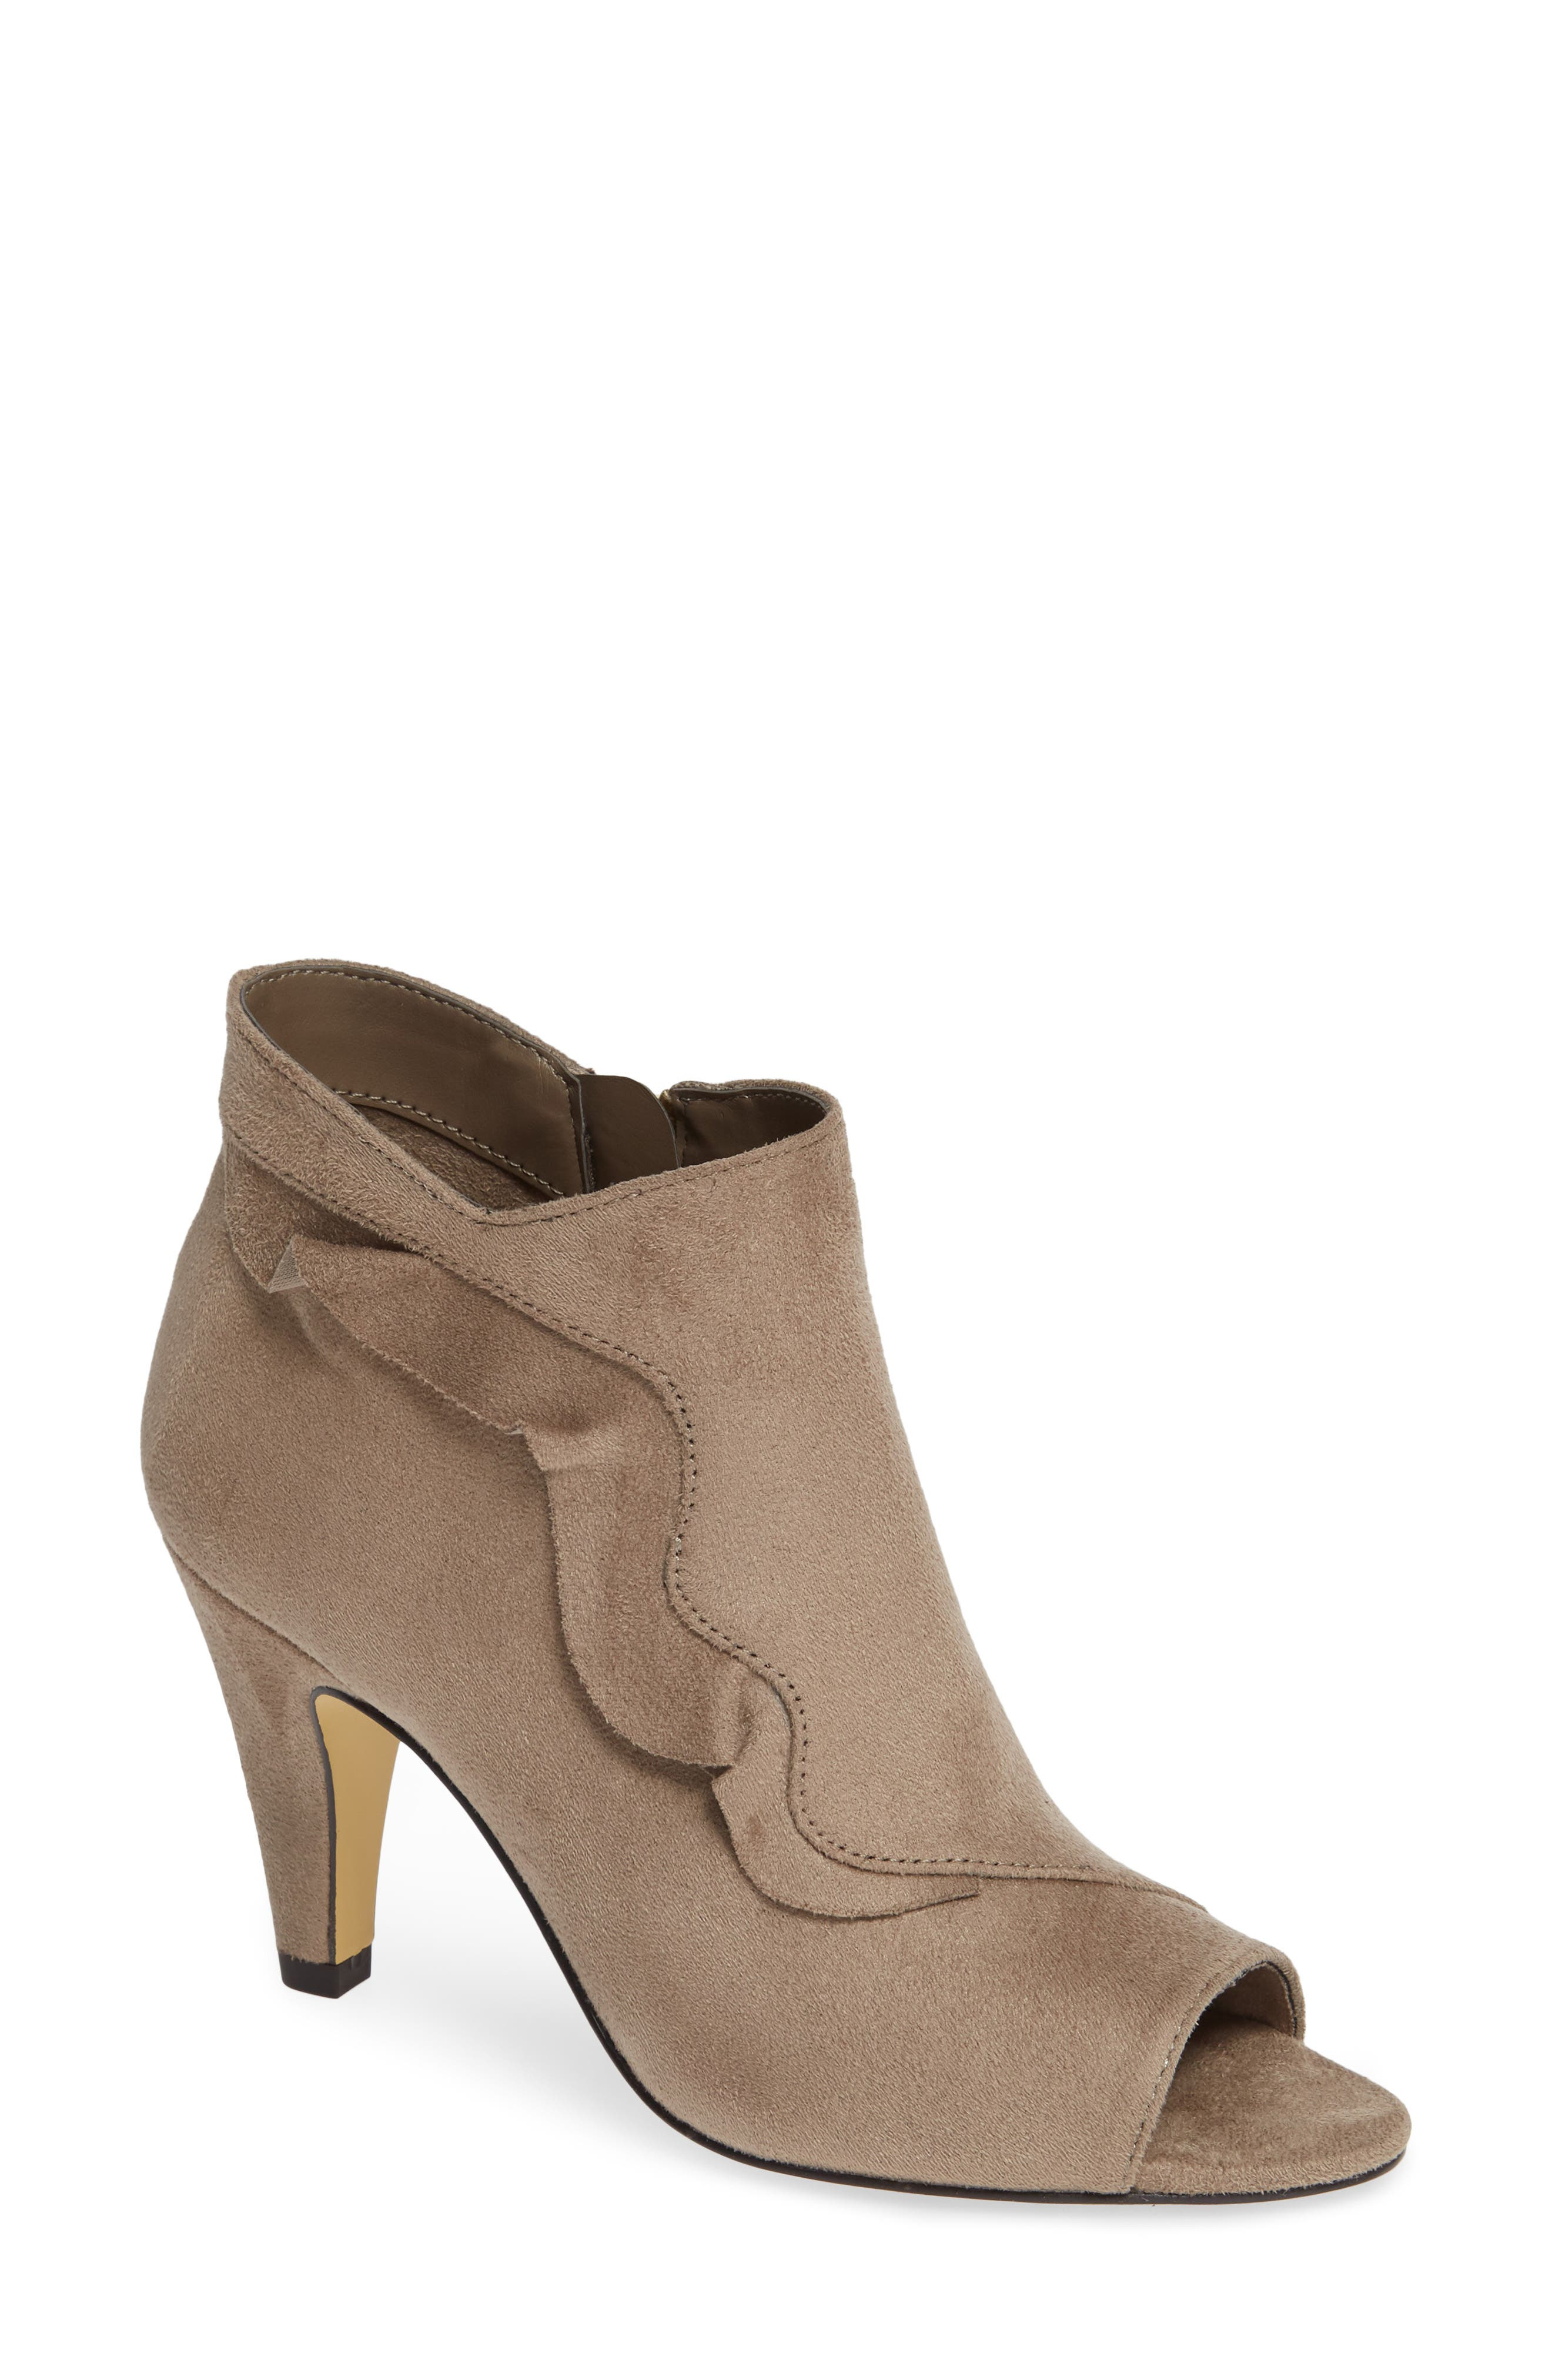 Nicolette Ruffle Dress Bootie,                         Main,                         color, STONE SUEDE